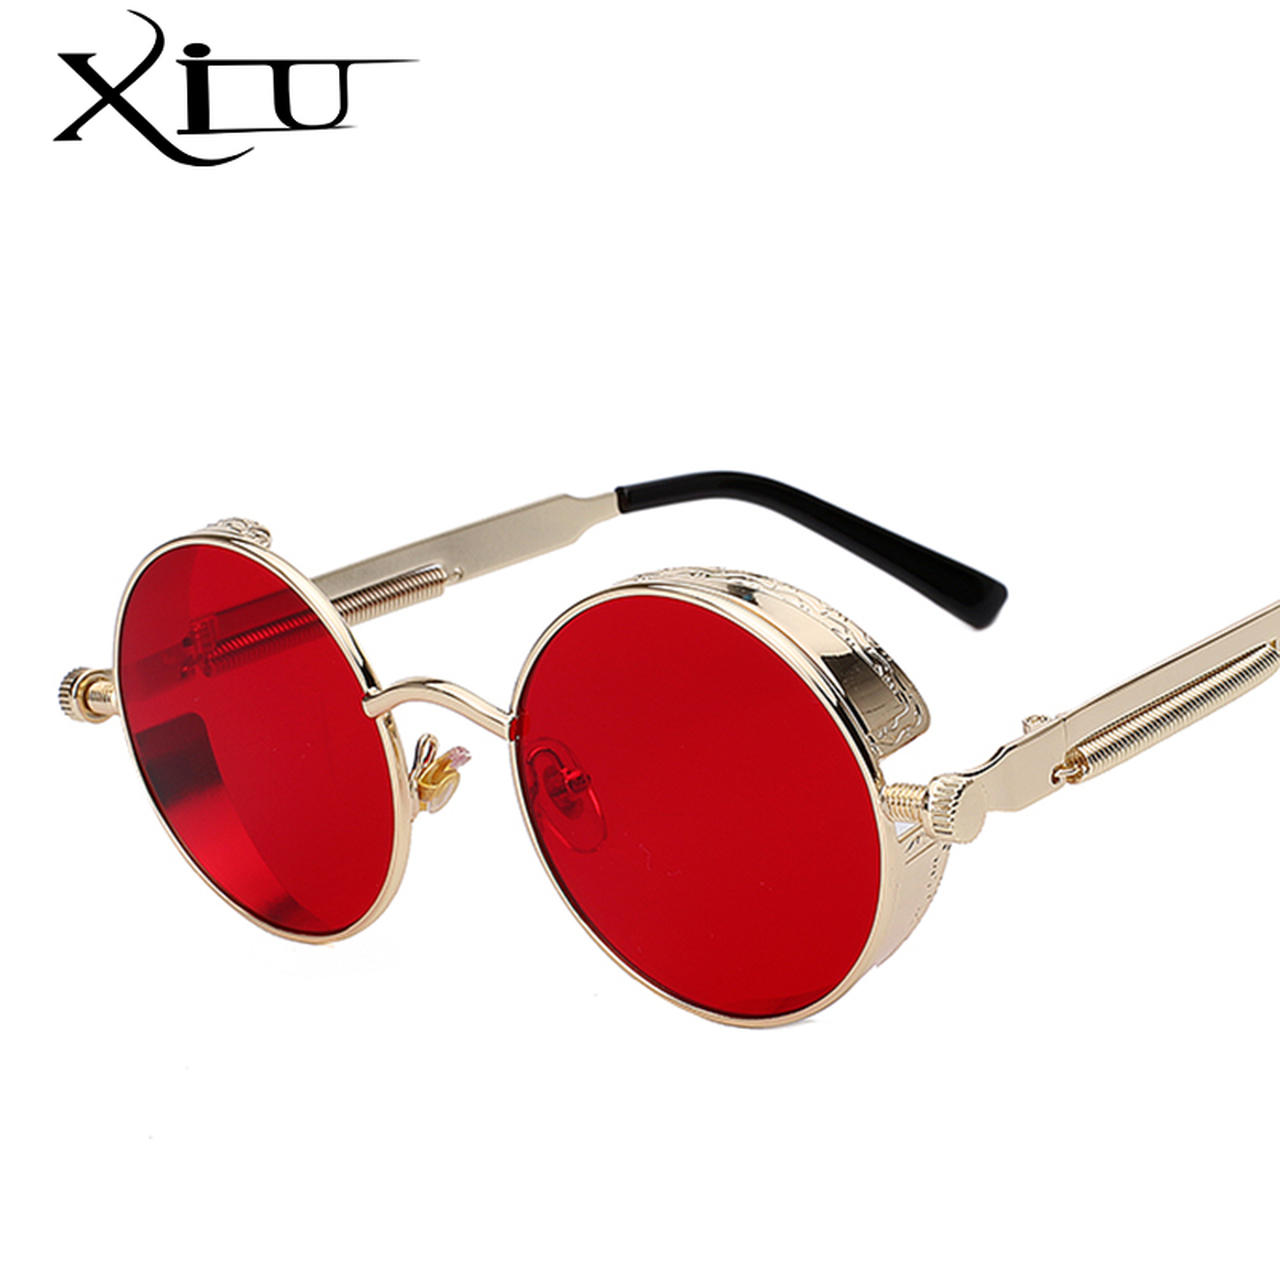 063d50411a Round Metal Sunglasses Steampunk Men Women Fashion Glasses Brand Designer  Retro Vintage Sunglasses UV400 - OnshopDeals.Com